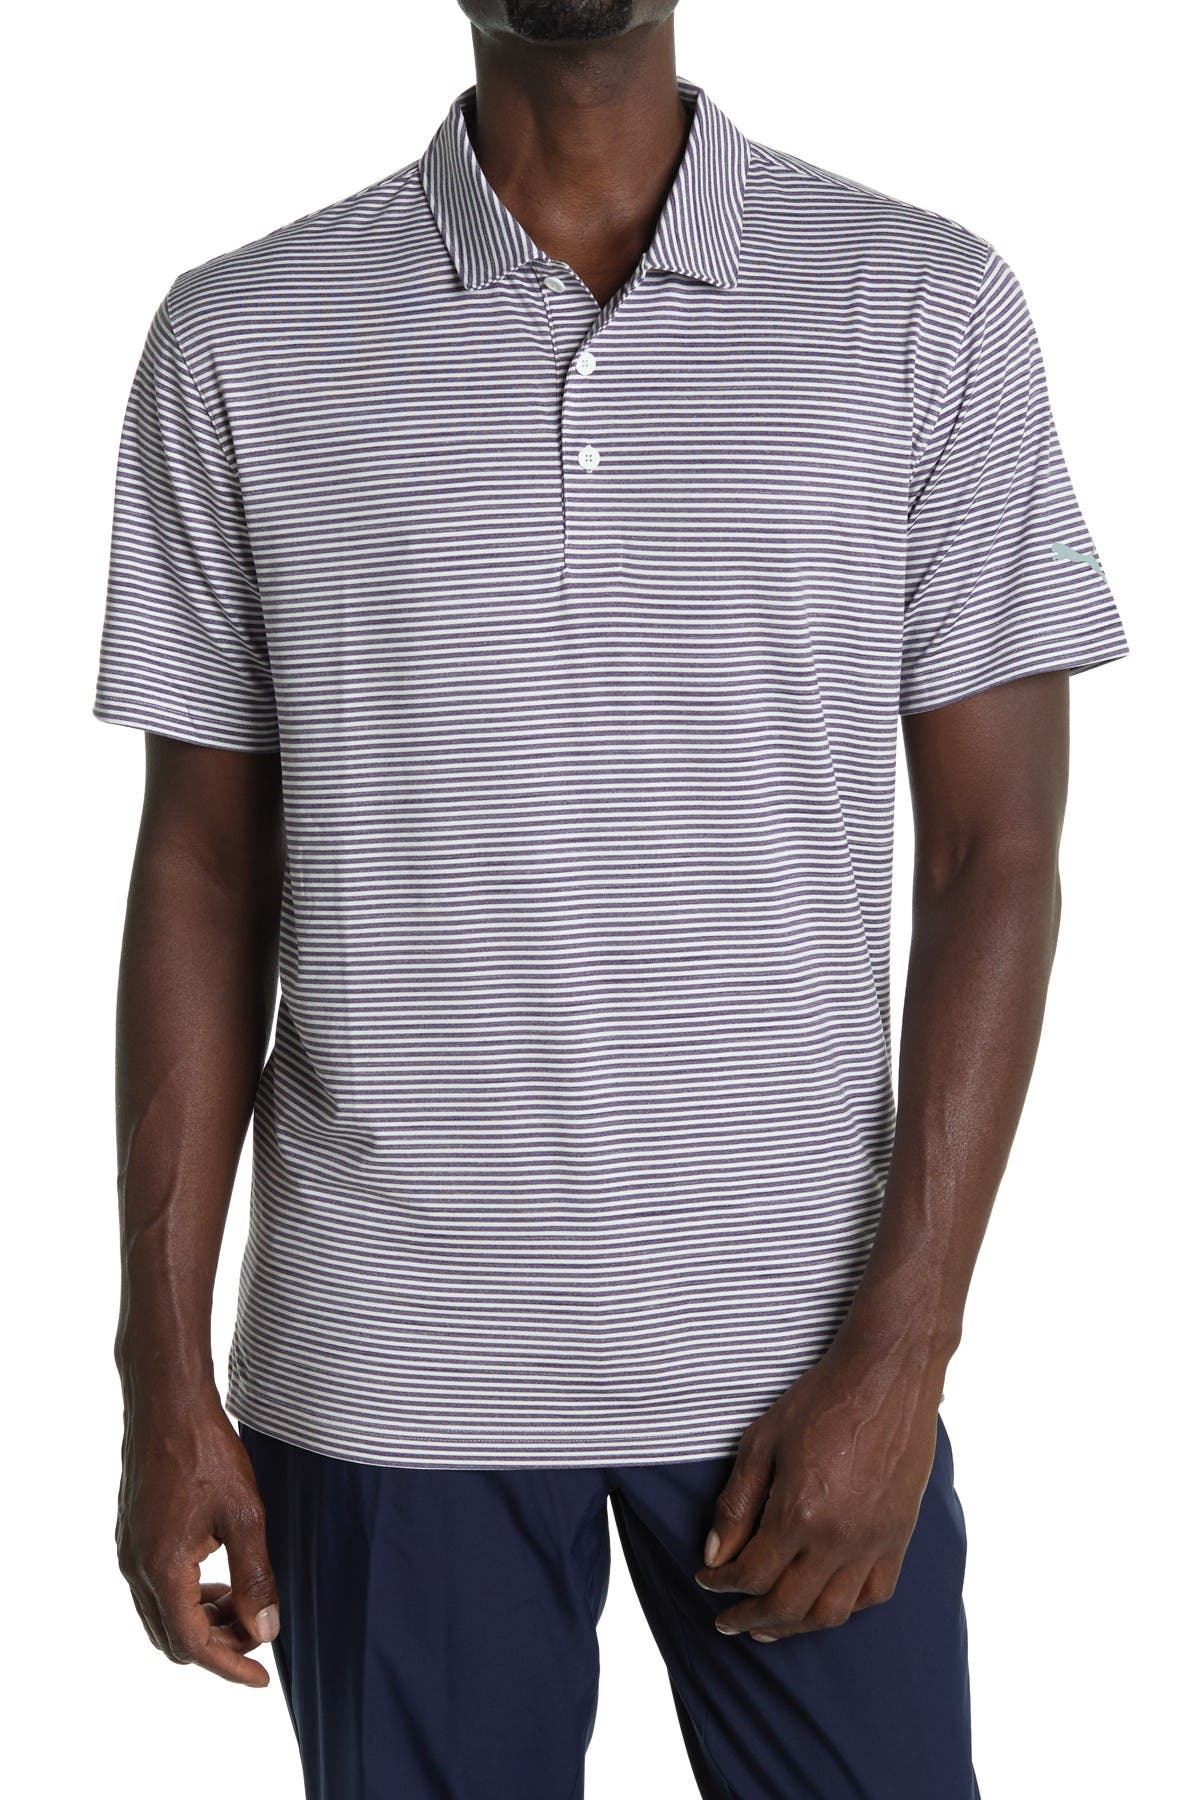 Image of PUMA Caddie Dark Purple Stripe Golf Polo